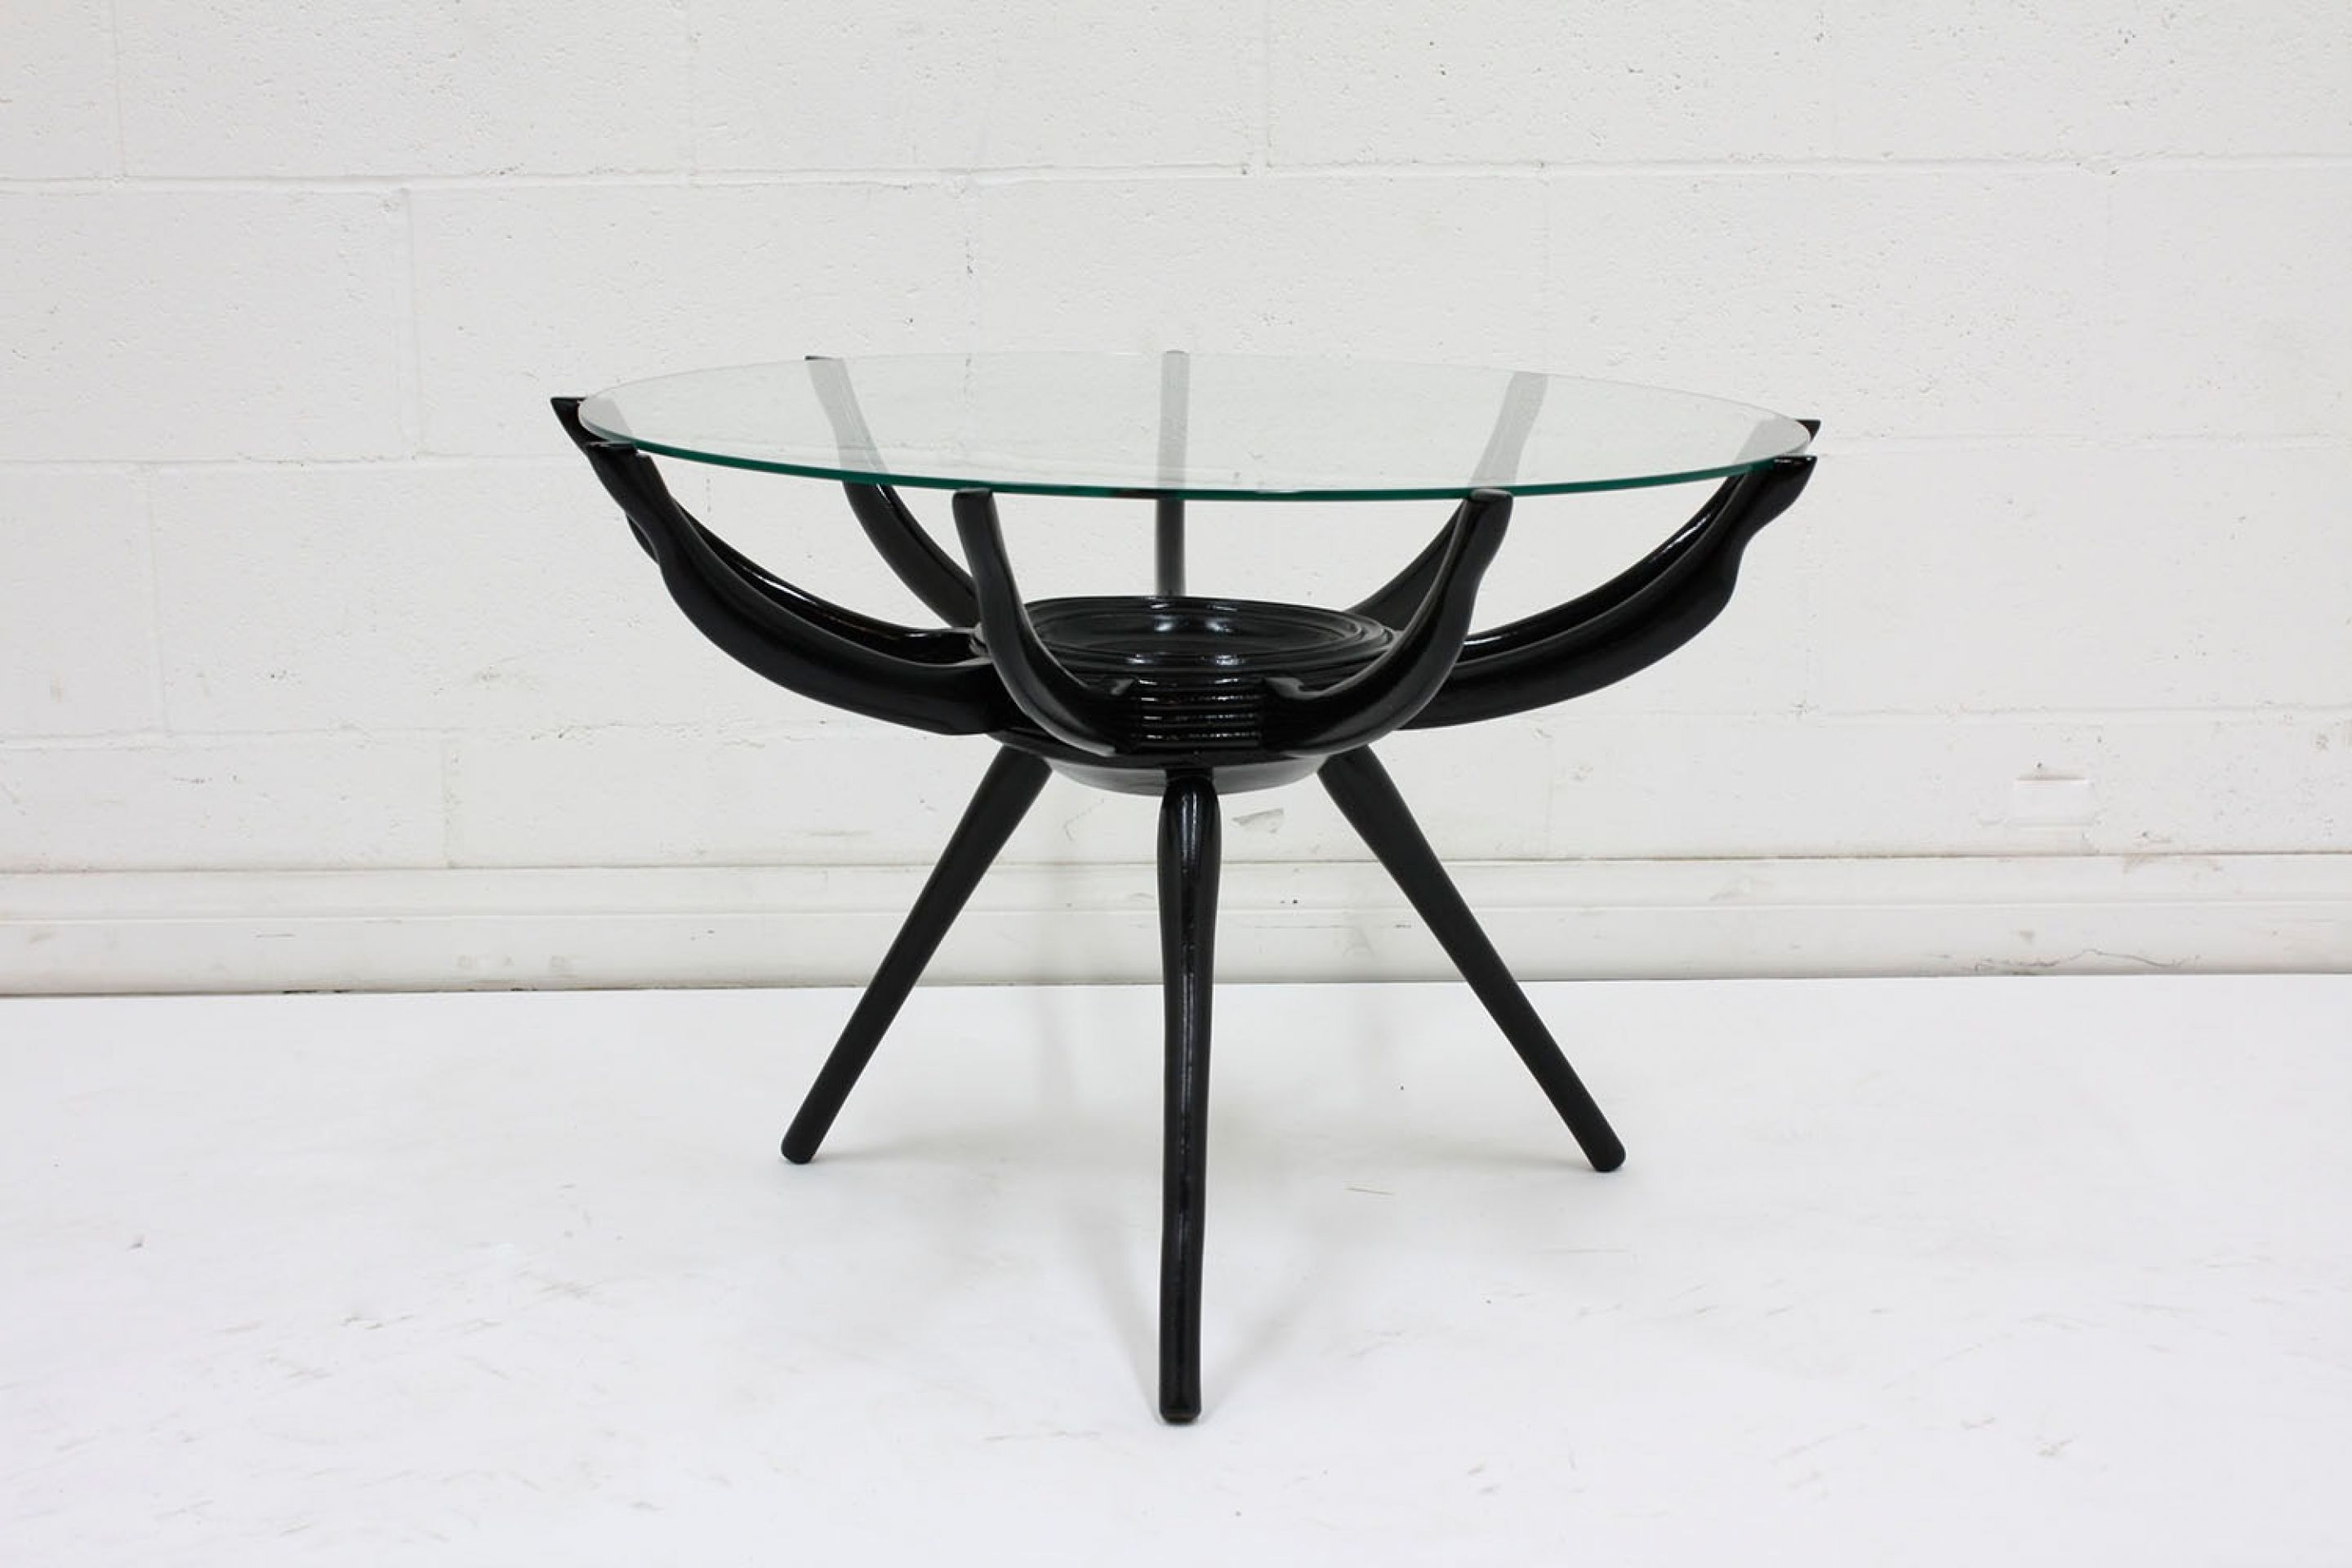 Midcentury Lacquered Spider Leg Coffee Table by Carlo di Carli